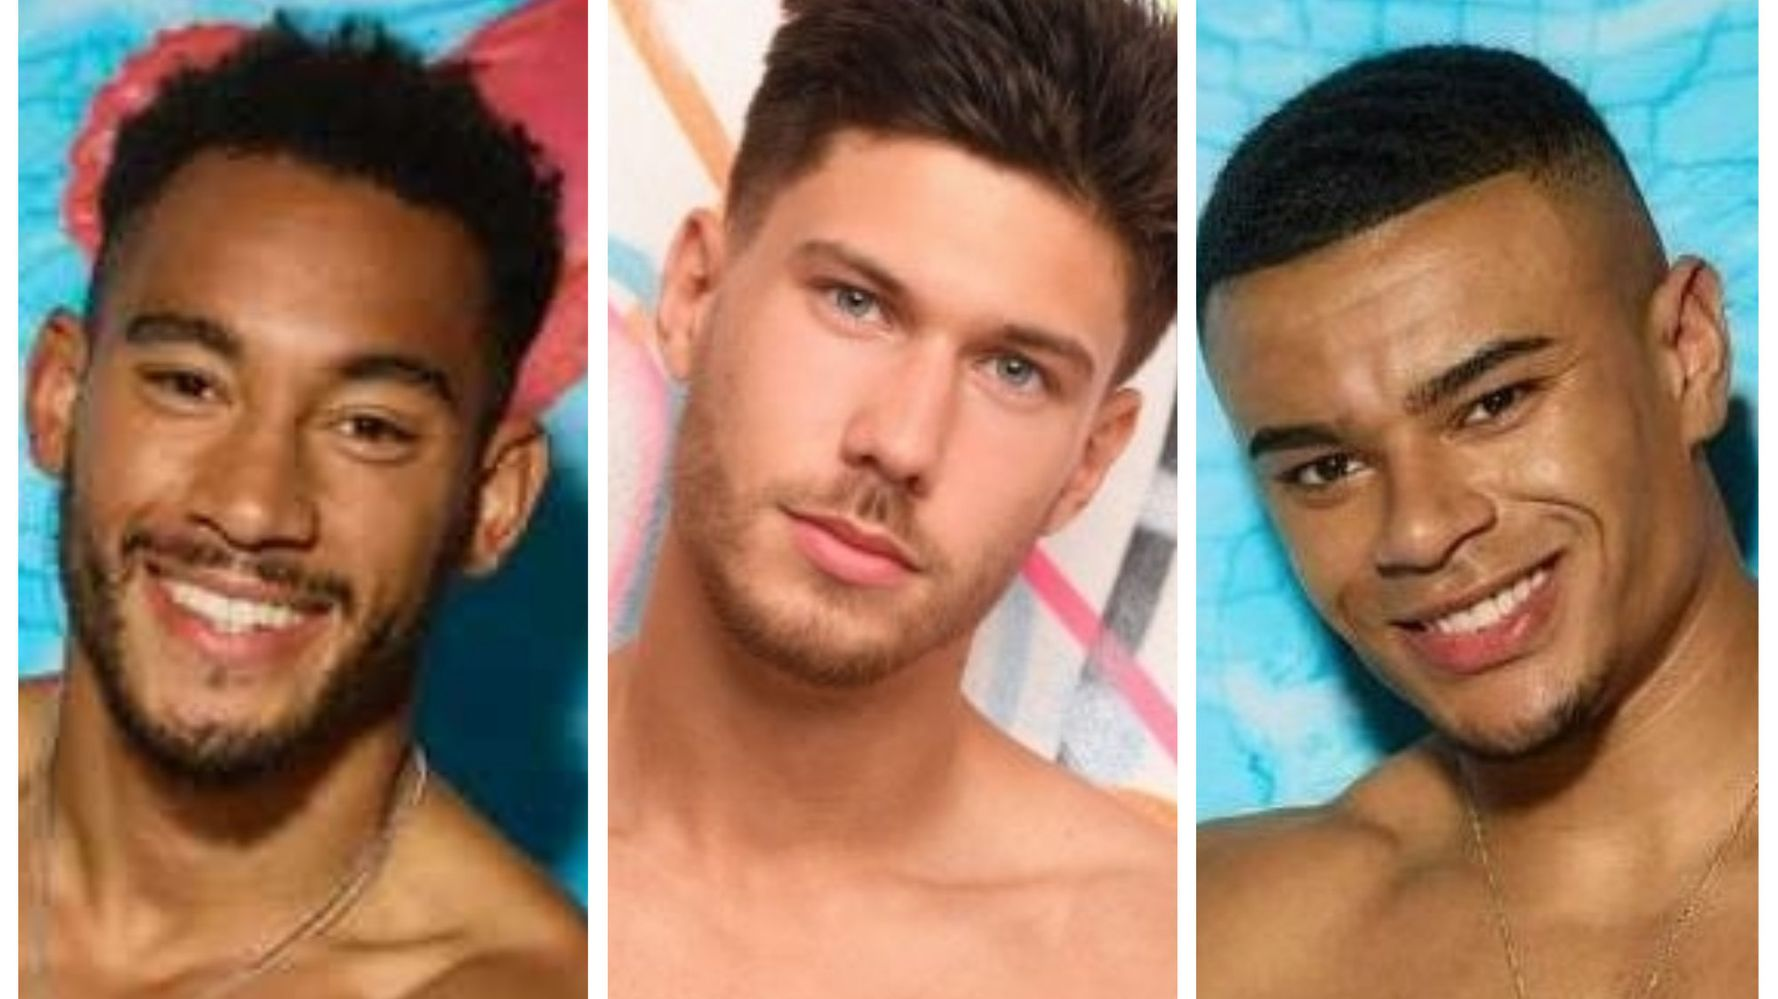 'I'm Happy, But I Could Be Happier': How Love Island Reflects Our Throwaway Dating Culture